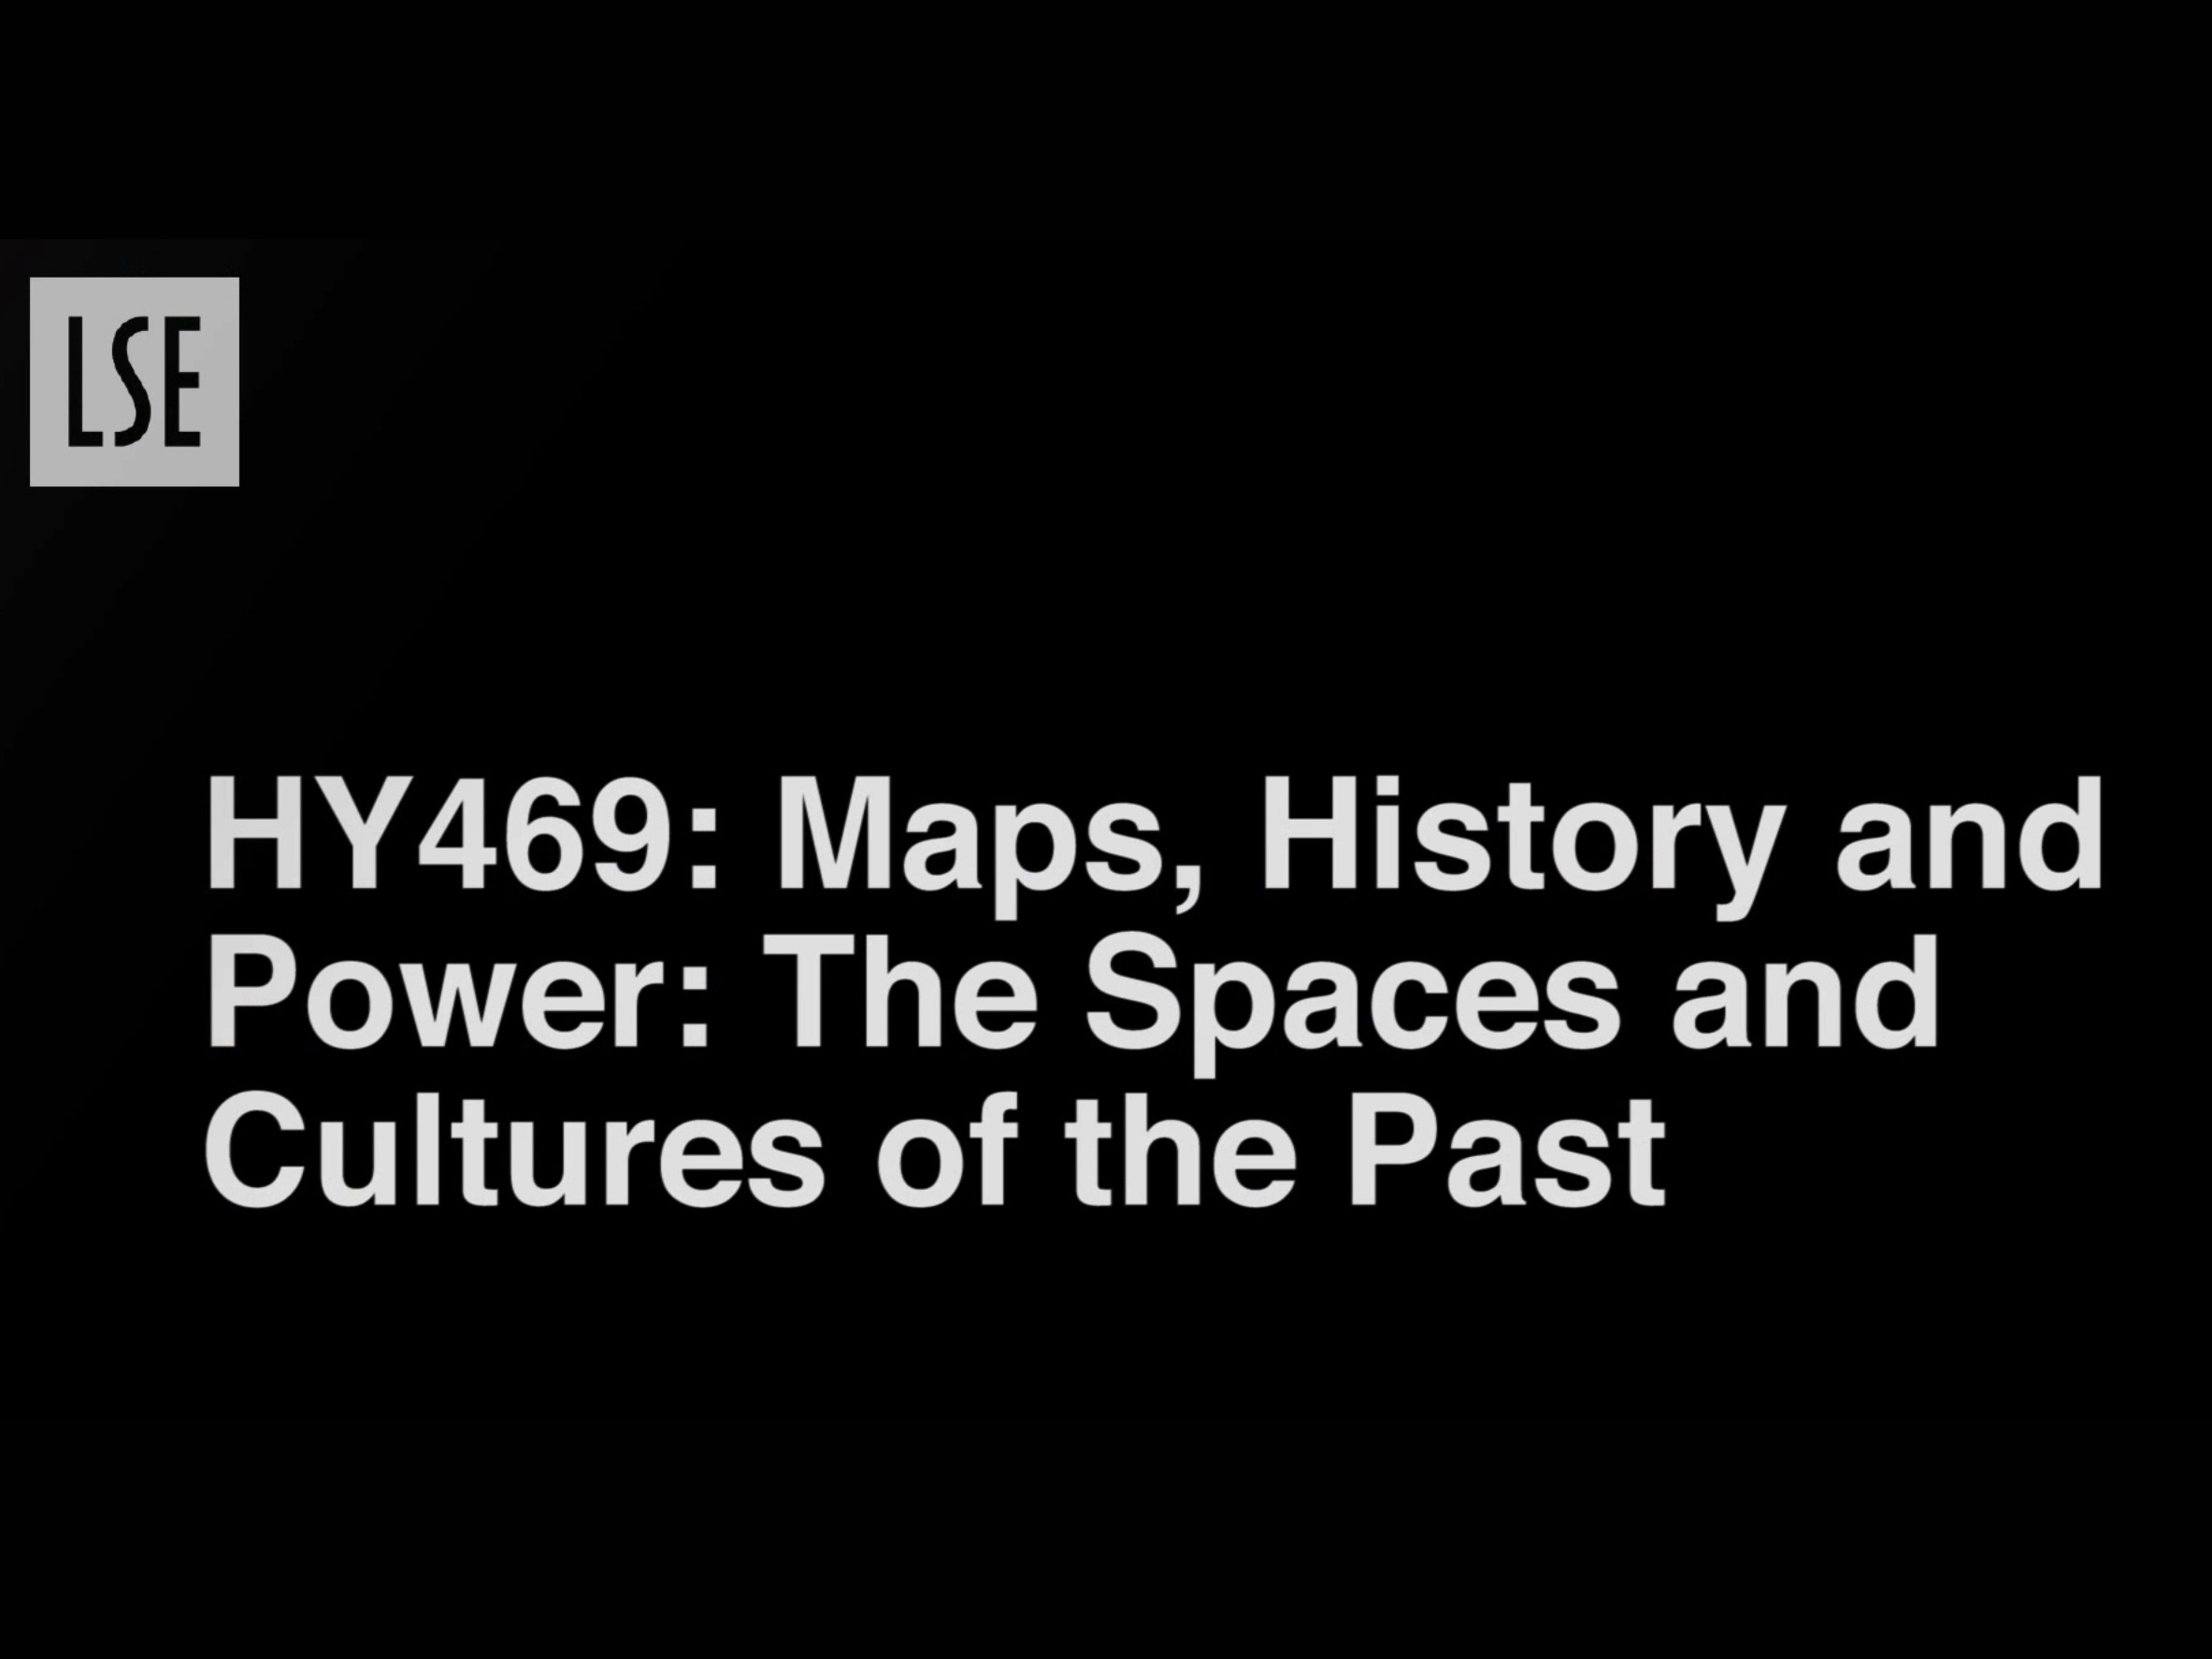 HY469: Maps, History and Power: The Spaces and Cultures of the Past